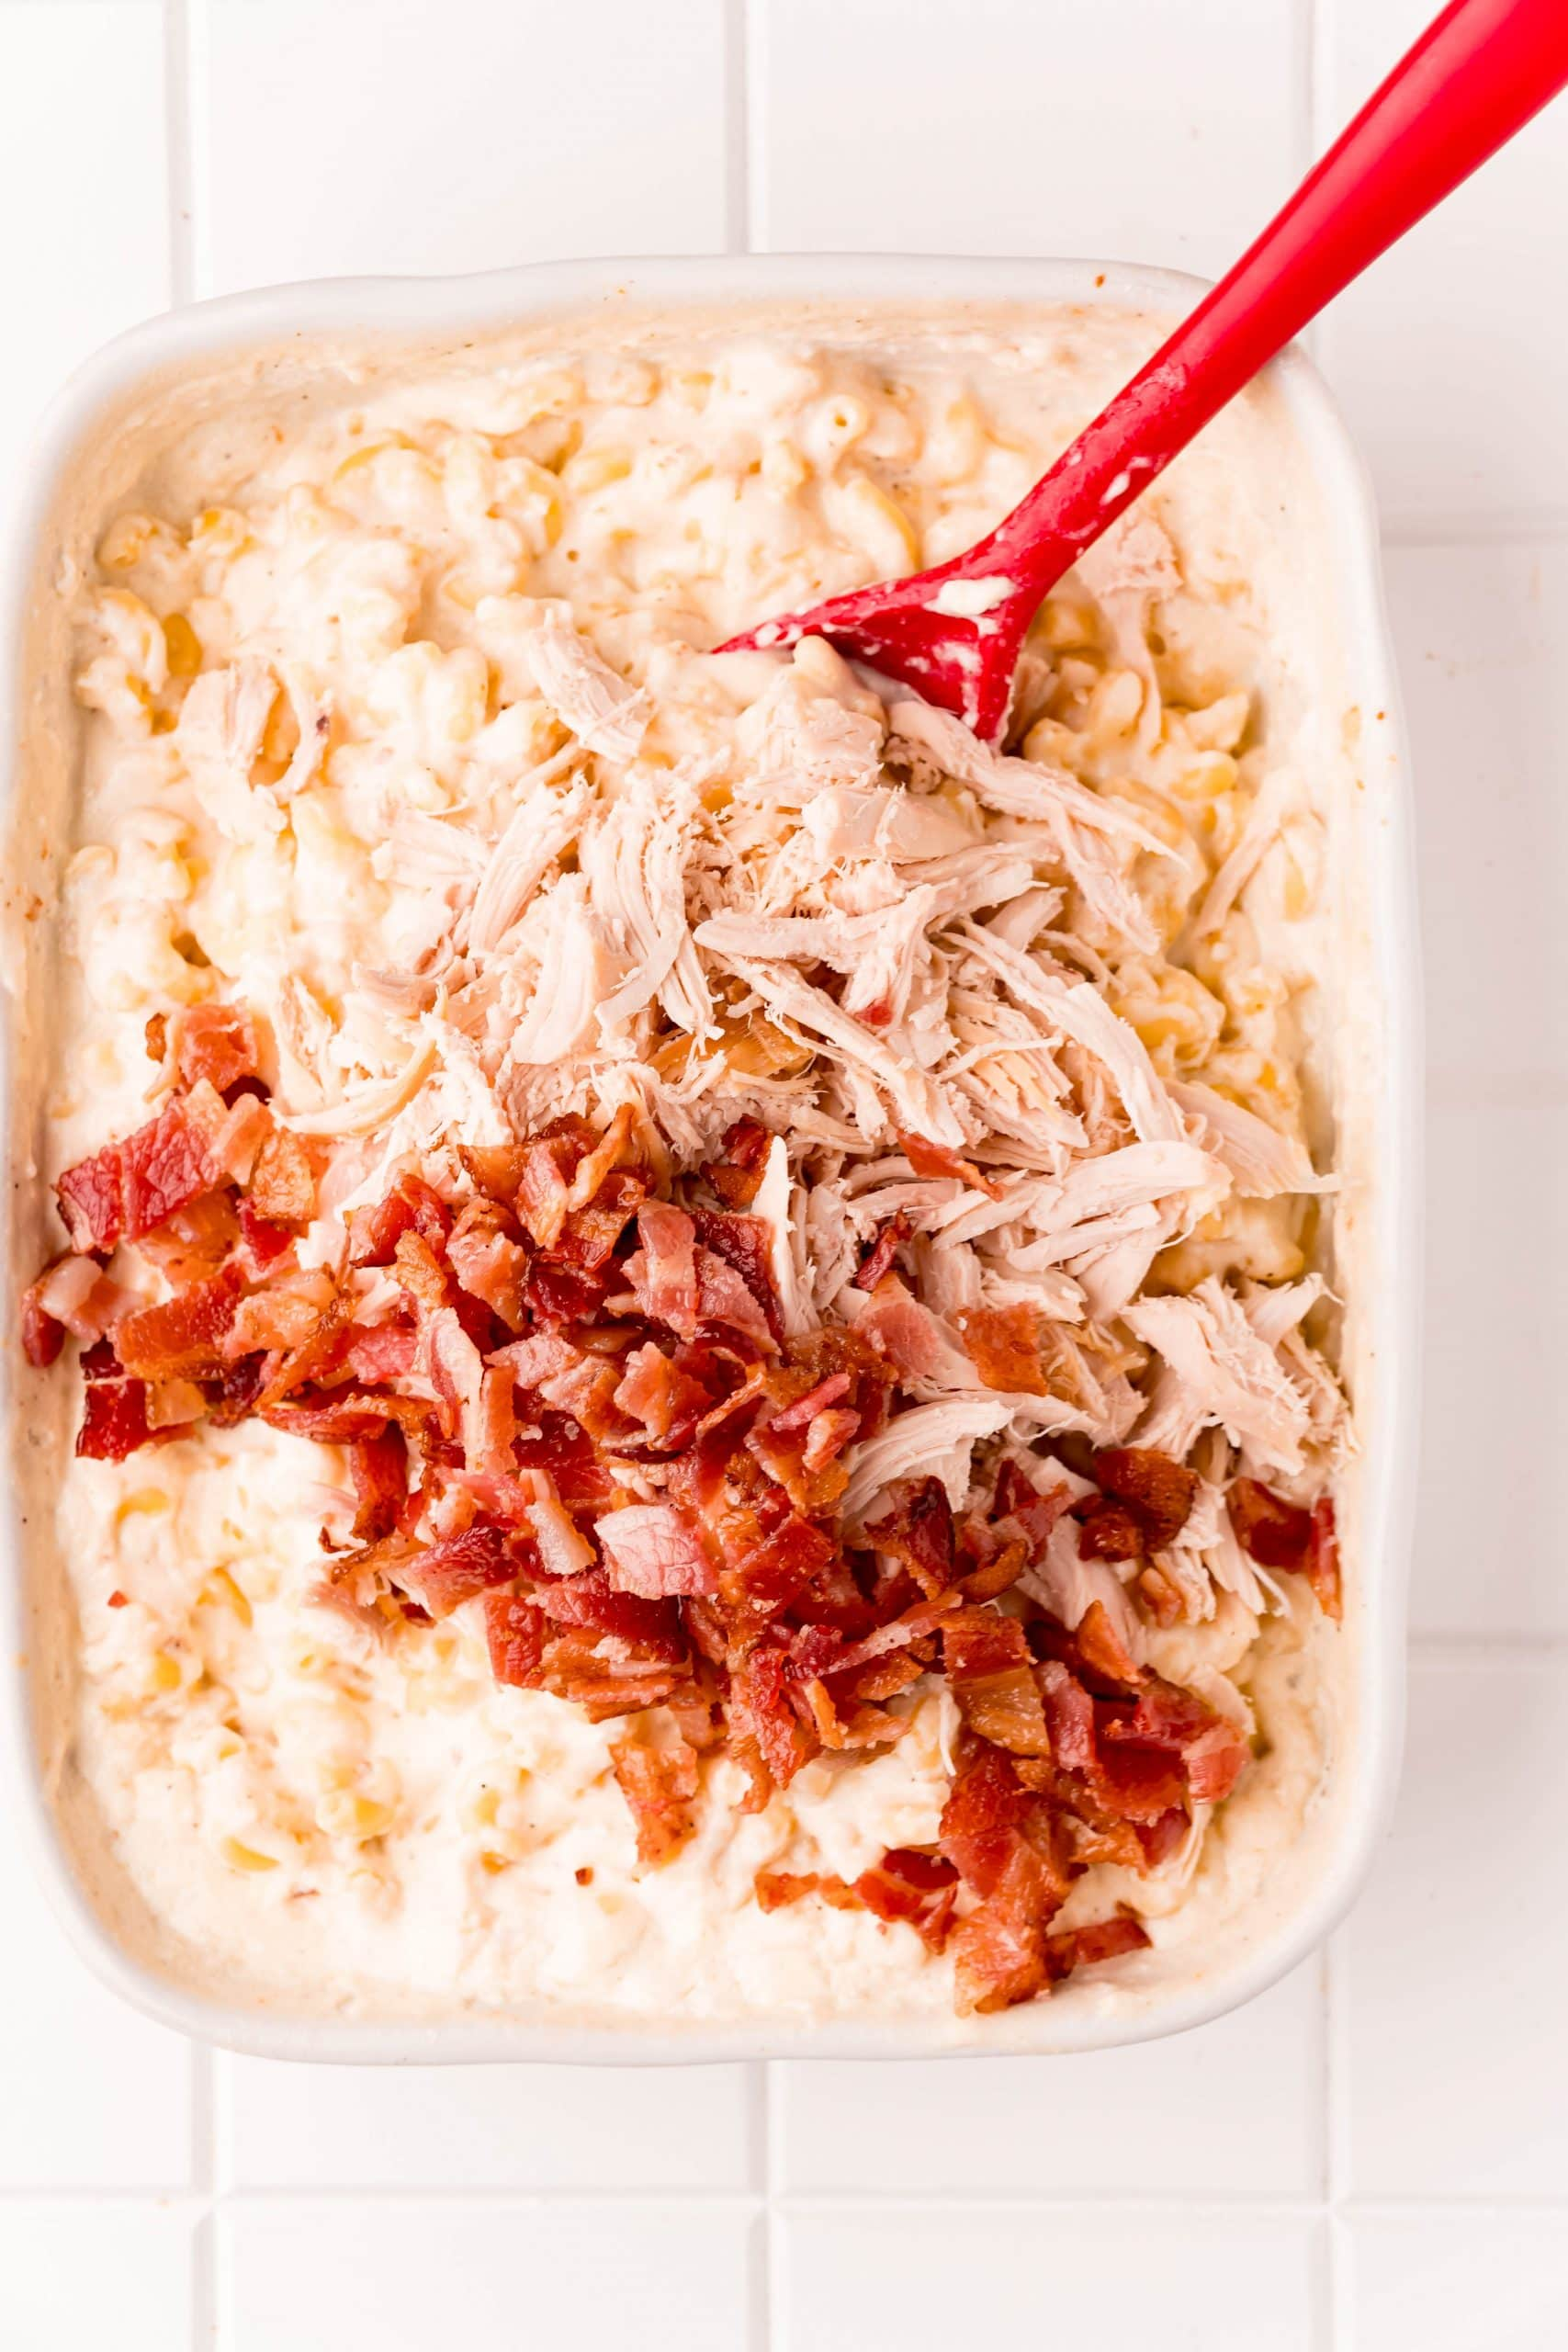 picture of chicken and bacon being stirred into creamy macaroni and cheese